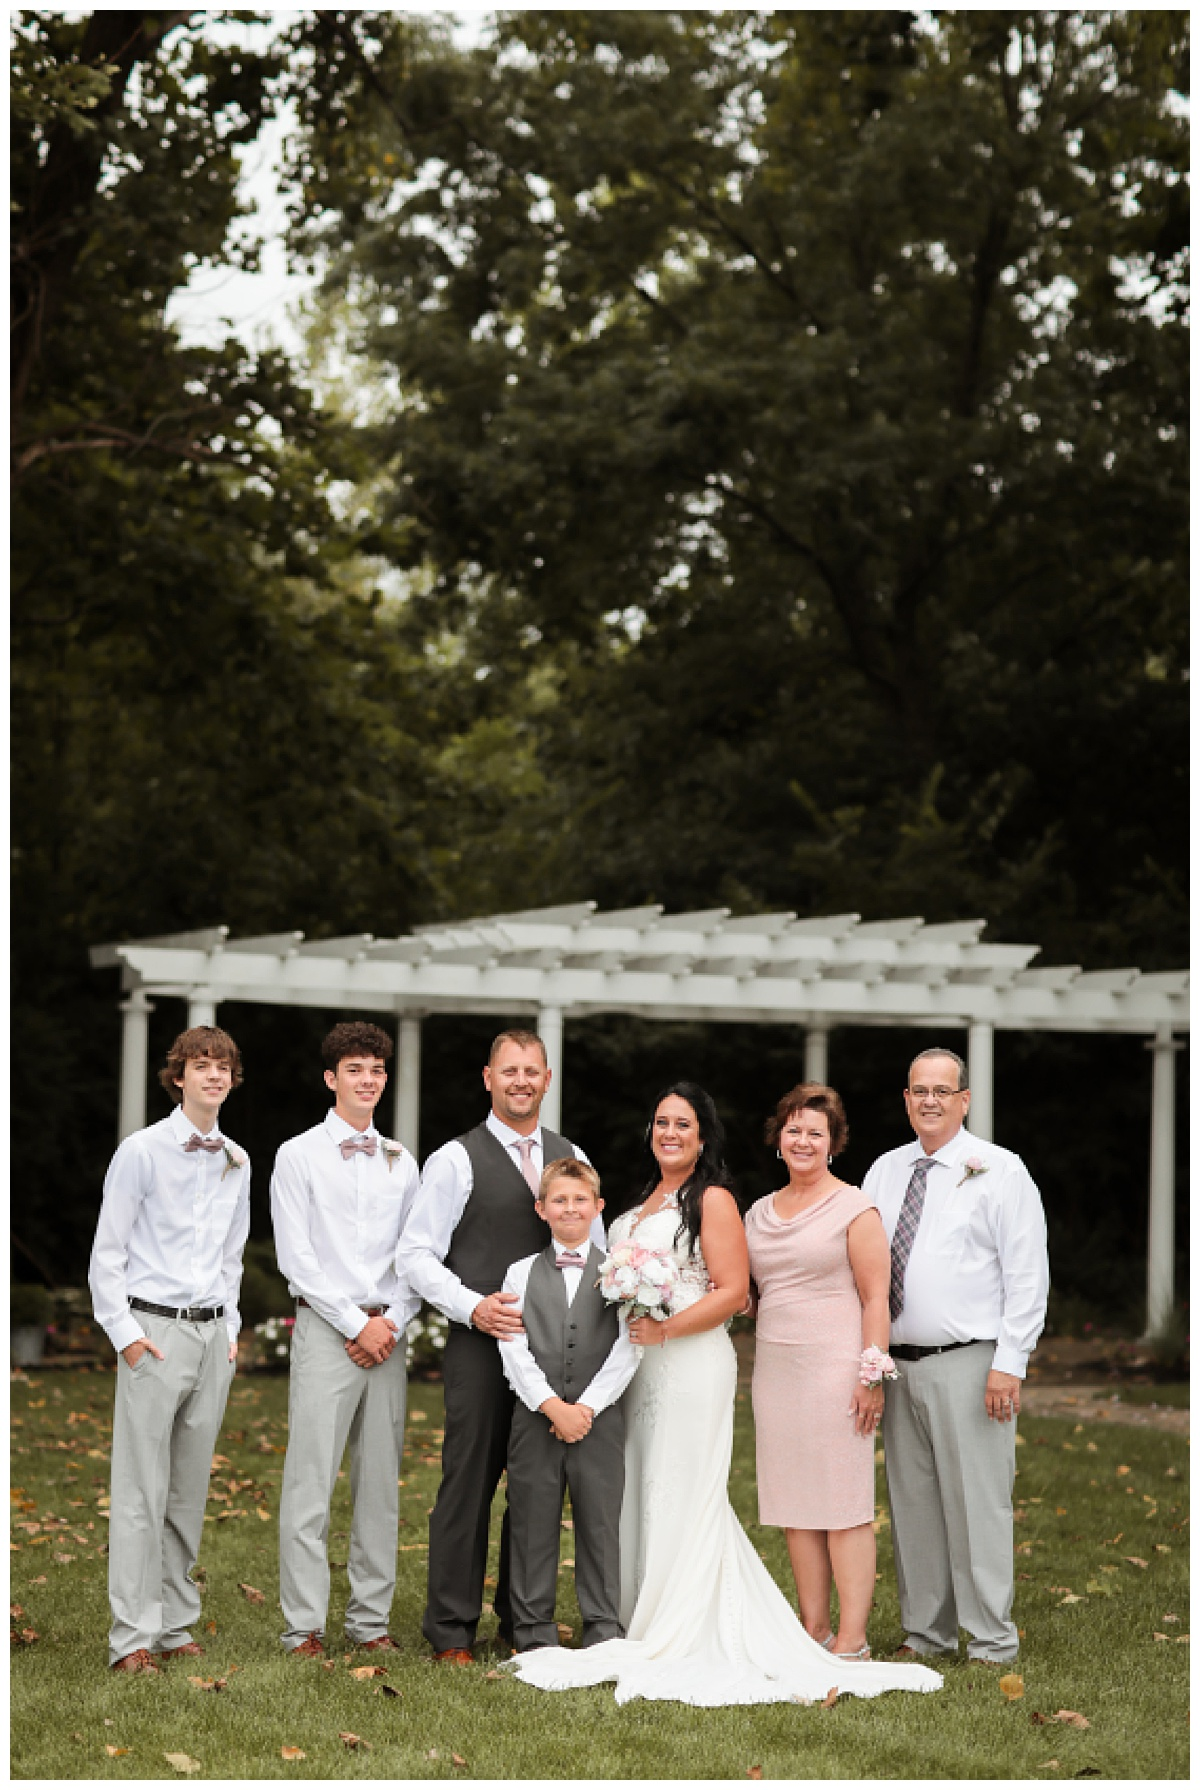 meghan-harrison-photography-wedding-willows-indianapolis0024.jpg